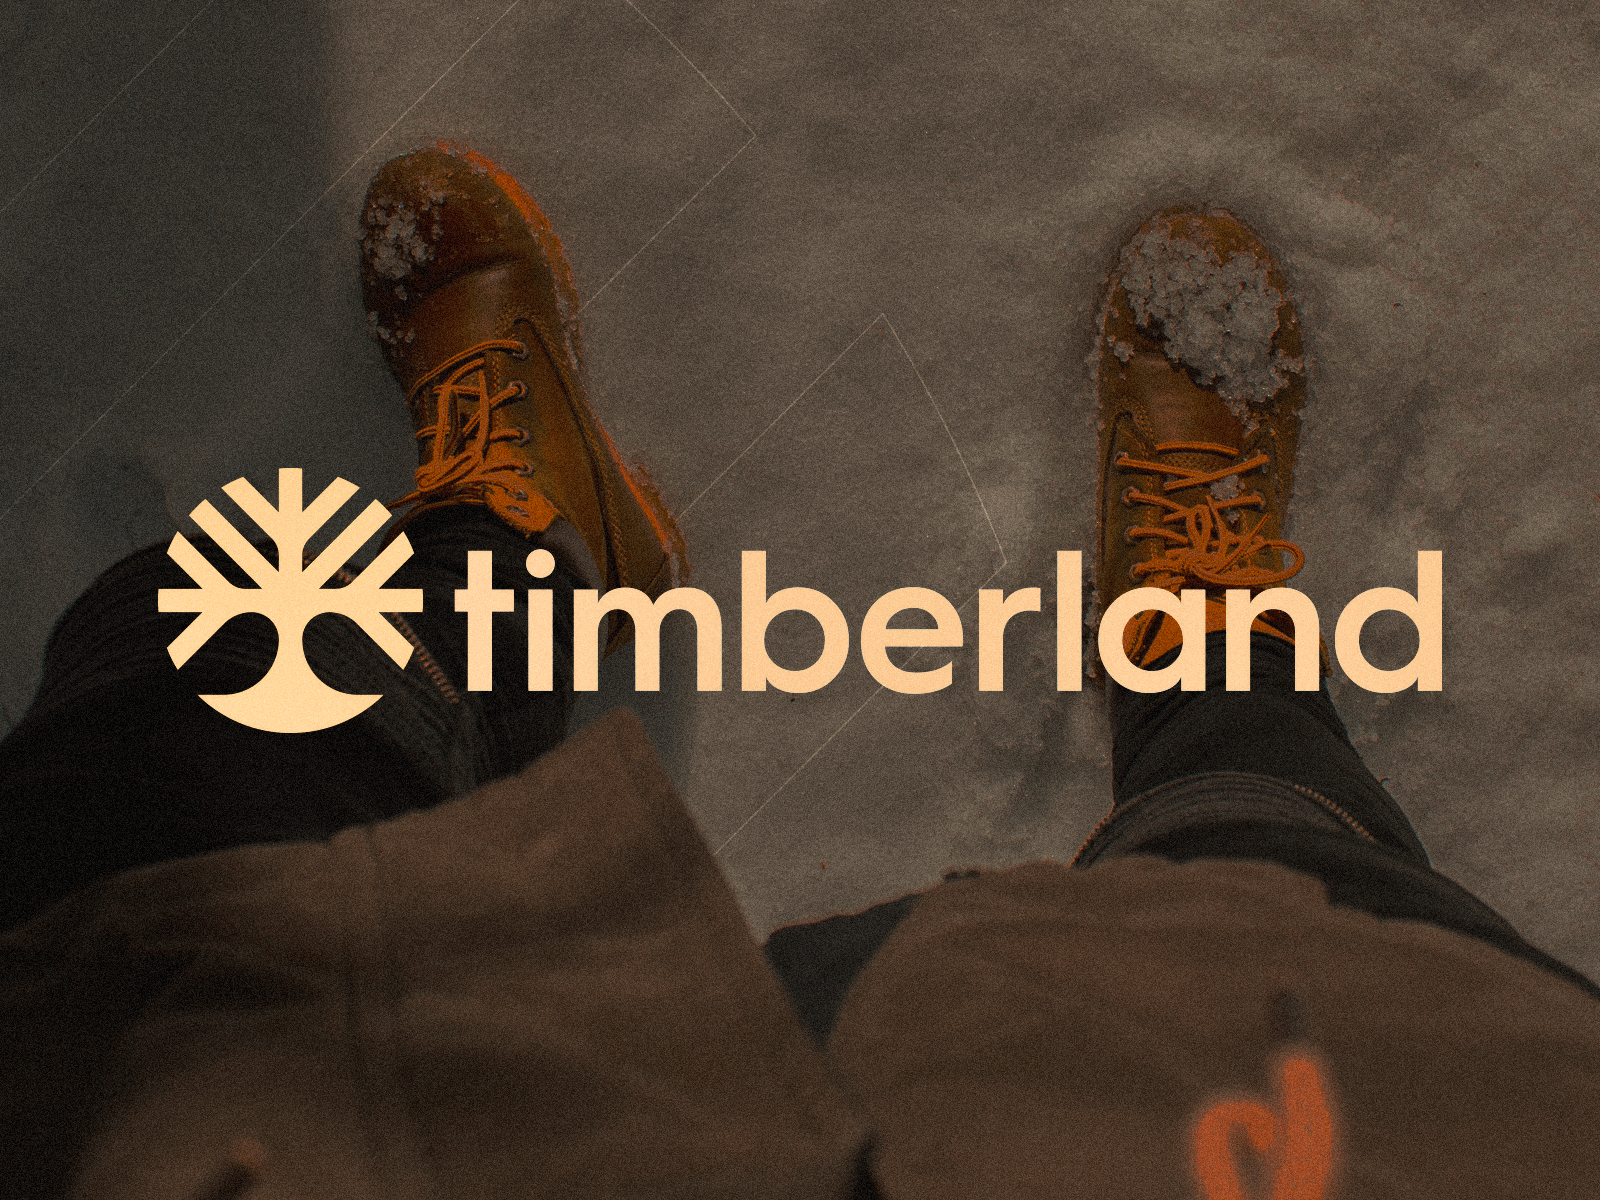 Timberland Redesign Concept